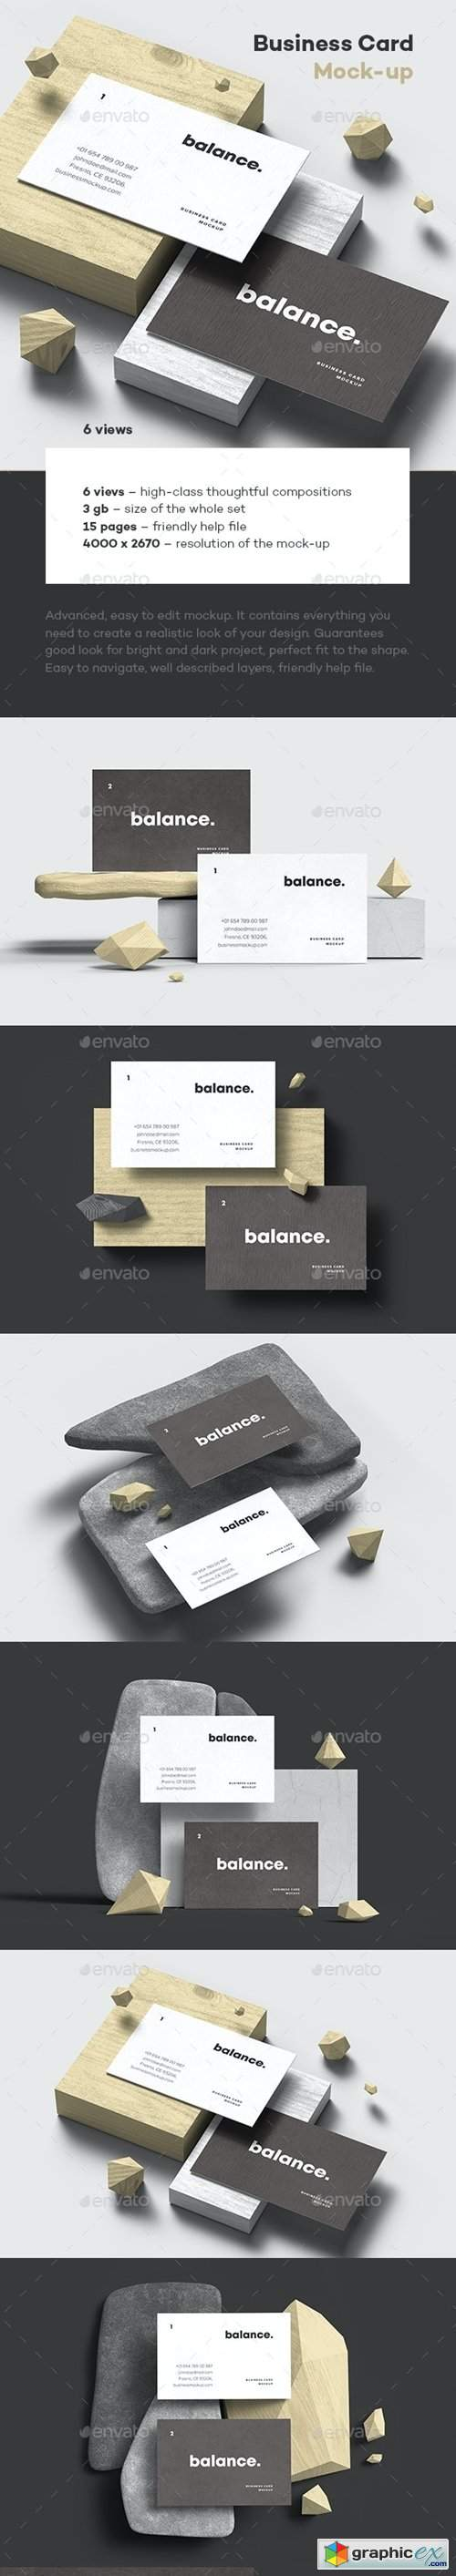 Business Card Mock-up 85x55